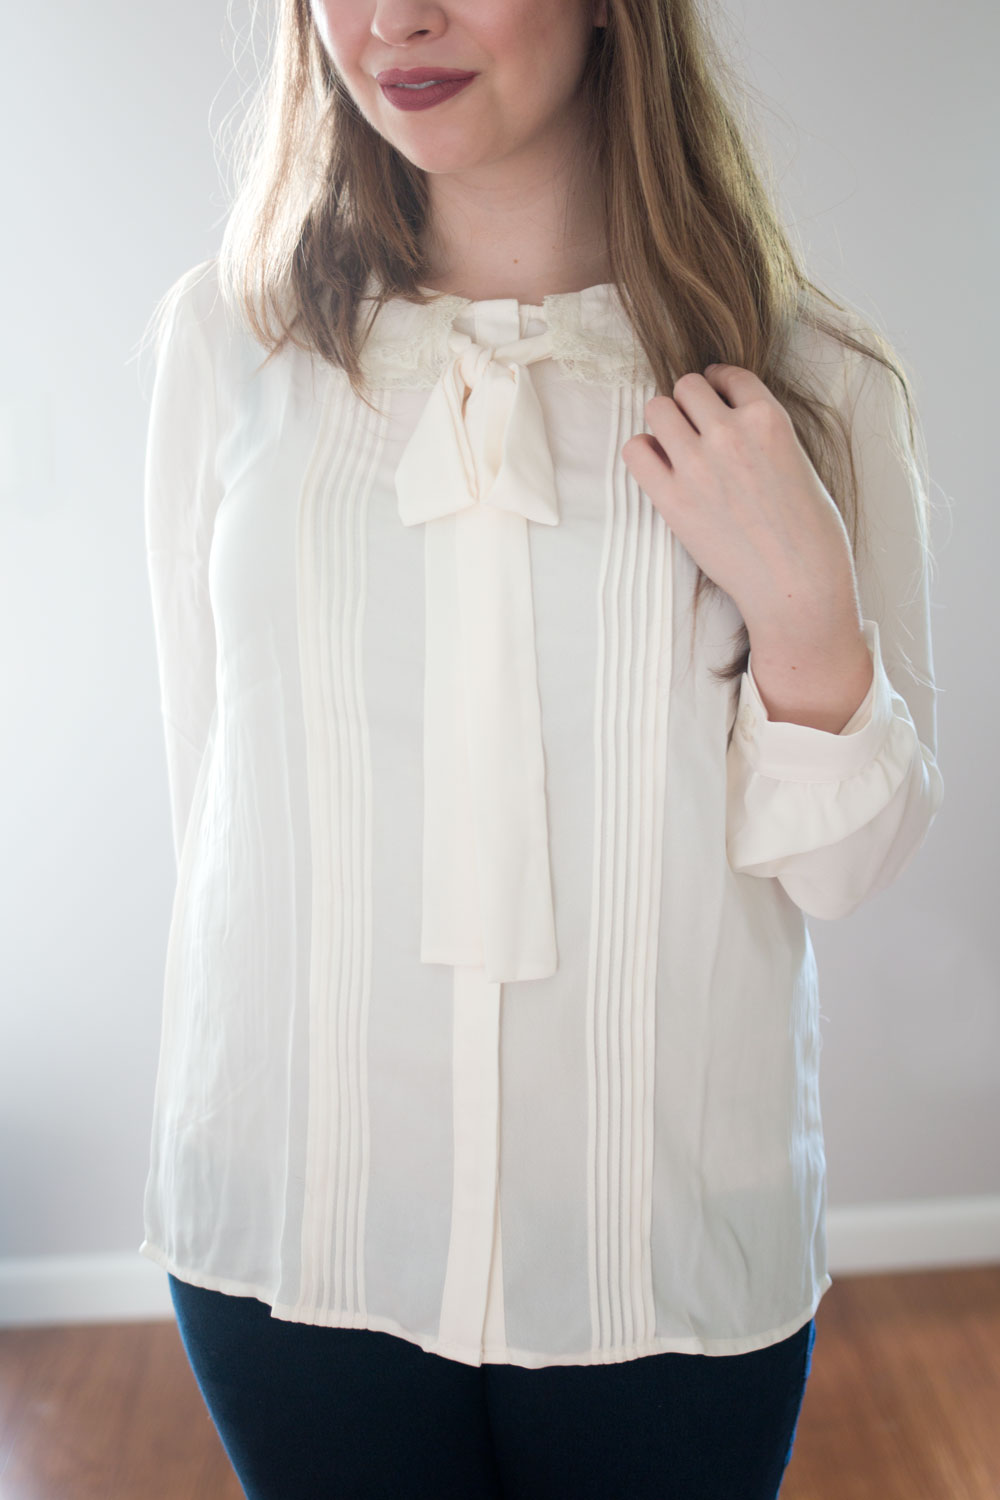 LC Lauren Conrad Runway Collection Pintuck Tie Neck Blouse // hellorigby seattle fashion blog